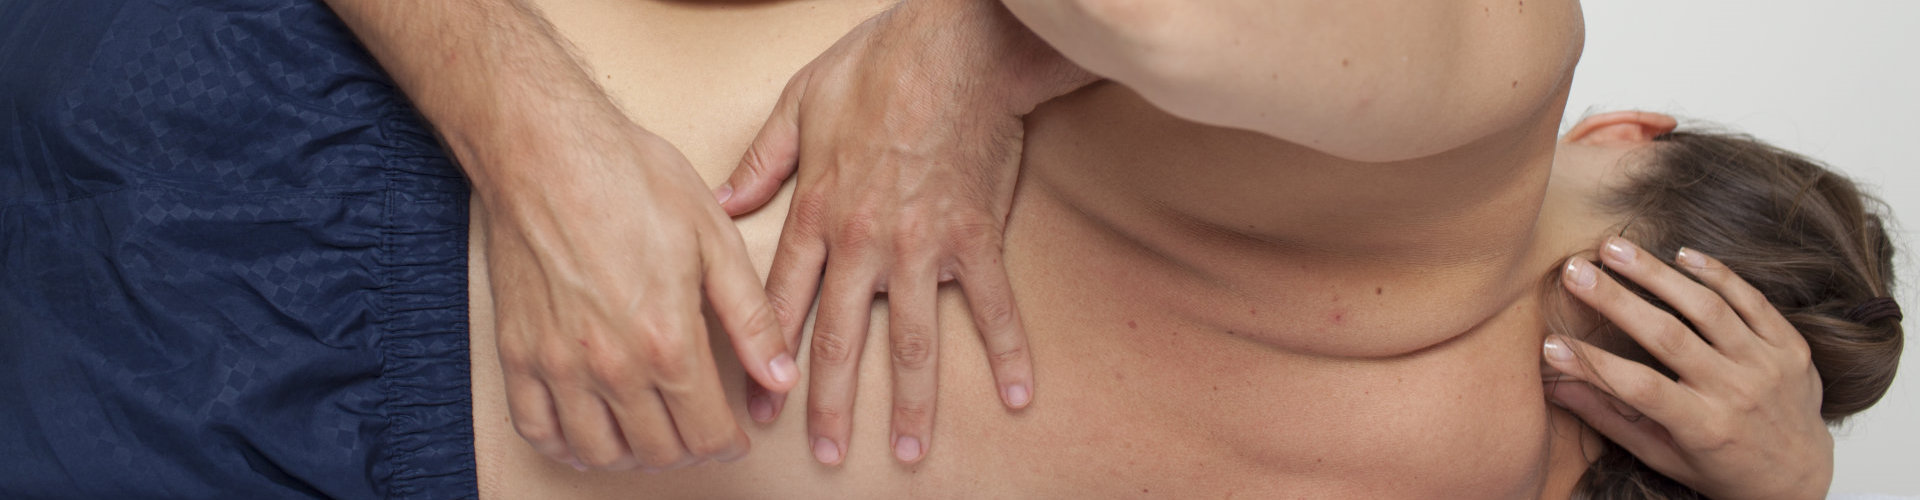 therapist doing chiropractic treatment